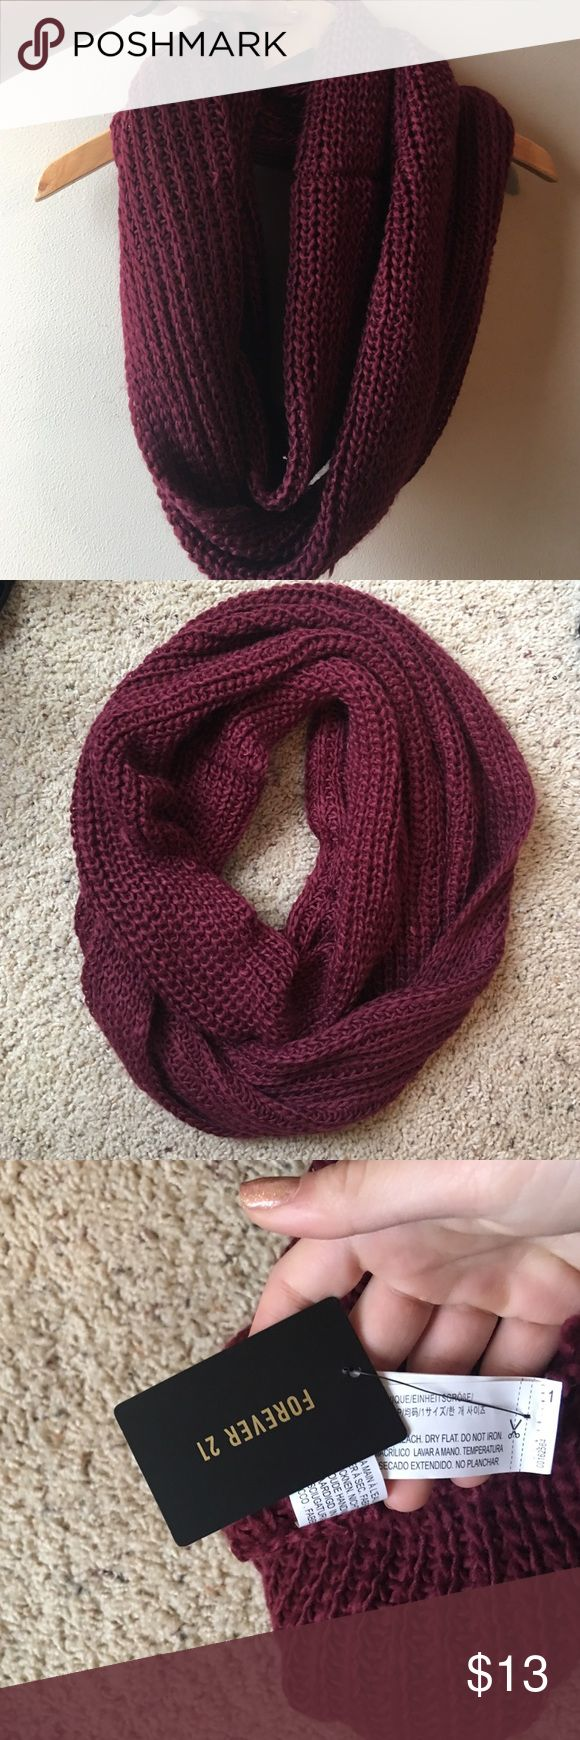 brand-new with tags forever 21 maroon scarf brand-new so never worn and in perfect condition chunky sweater knit maroon scarf Forever 21 Accessories